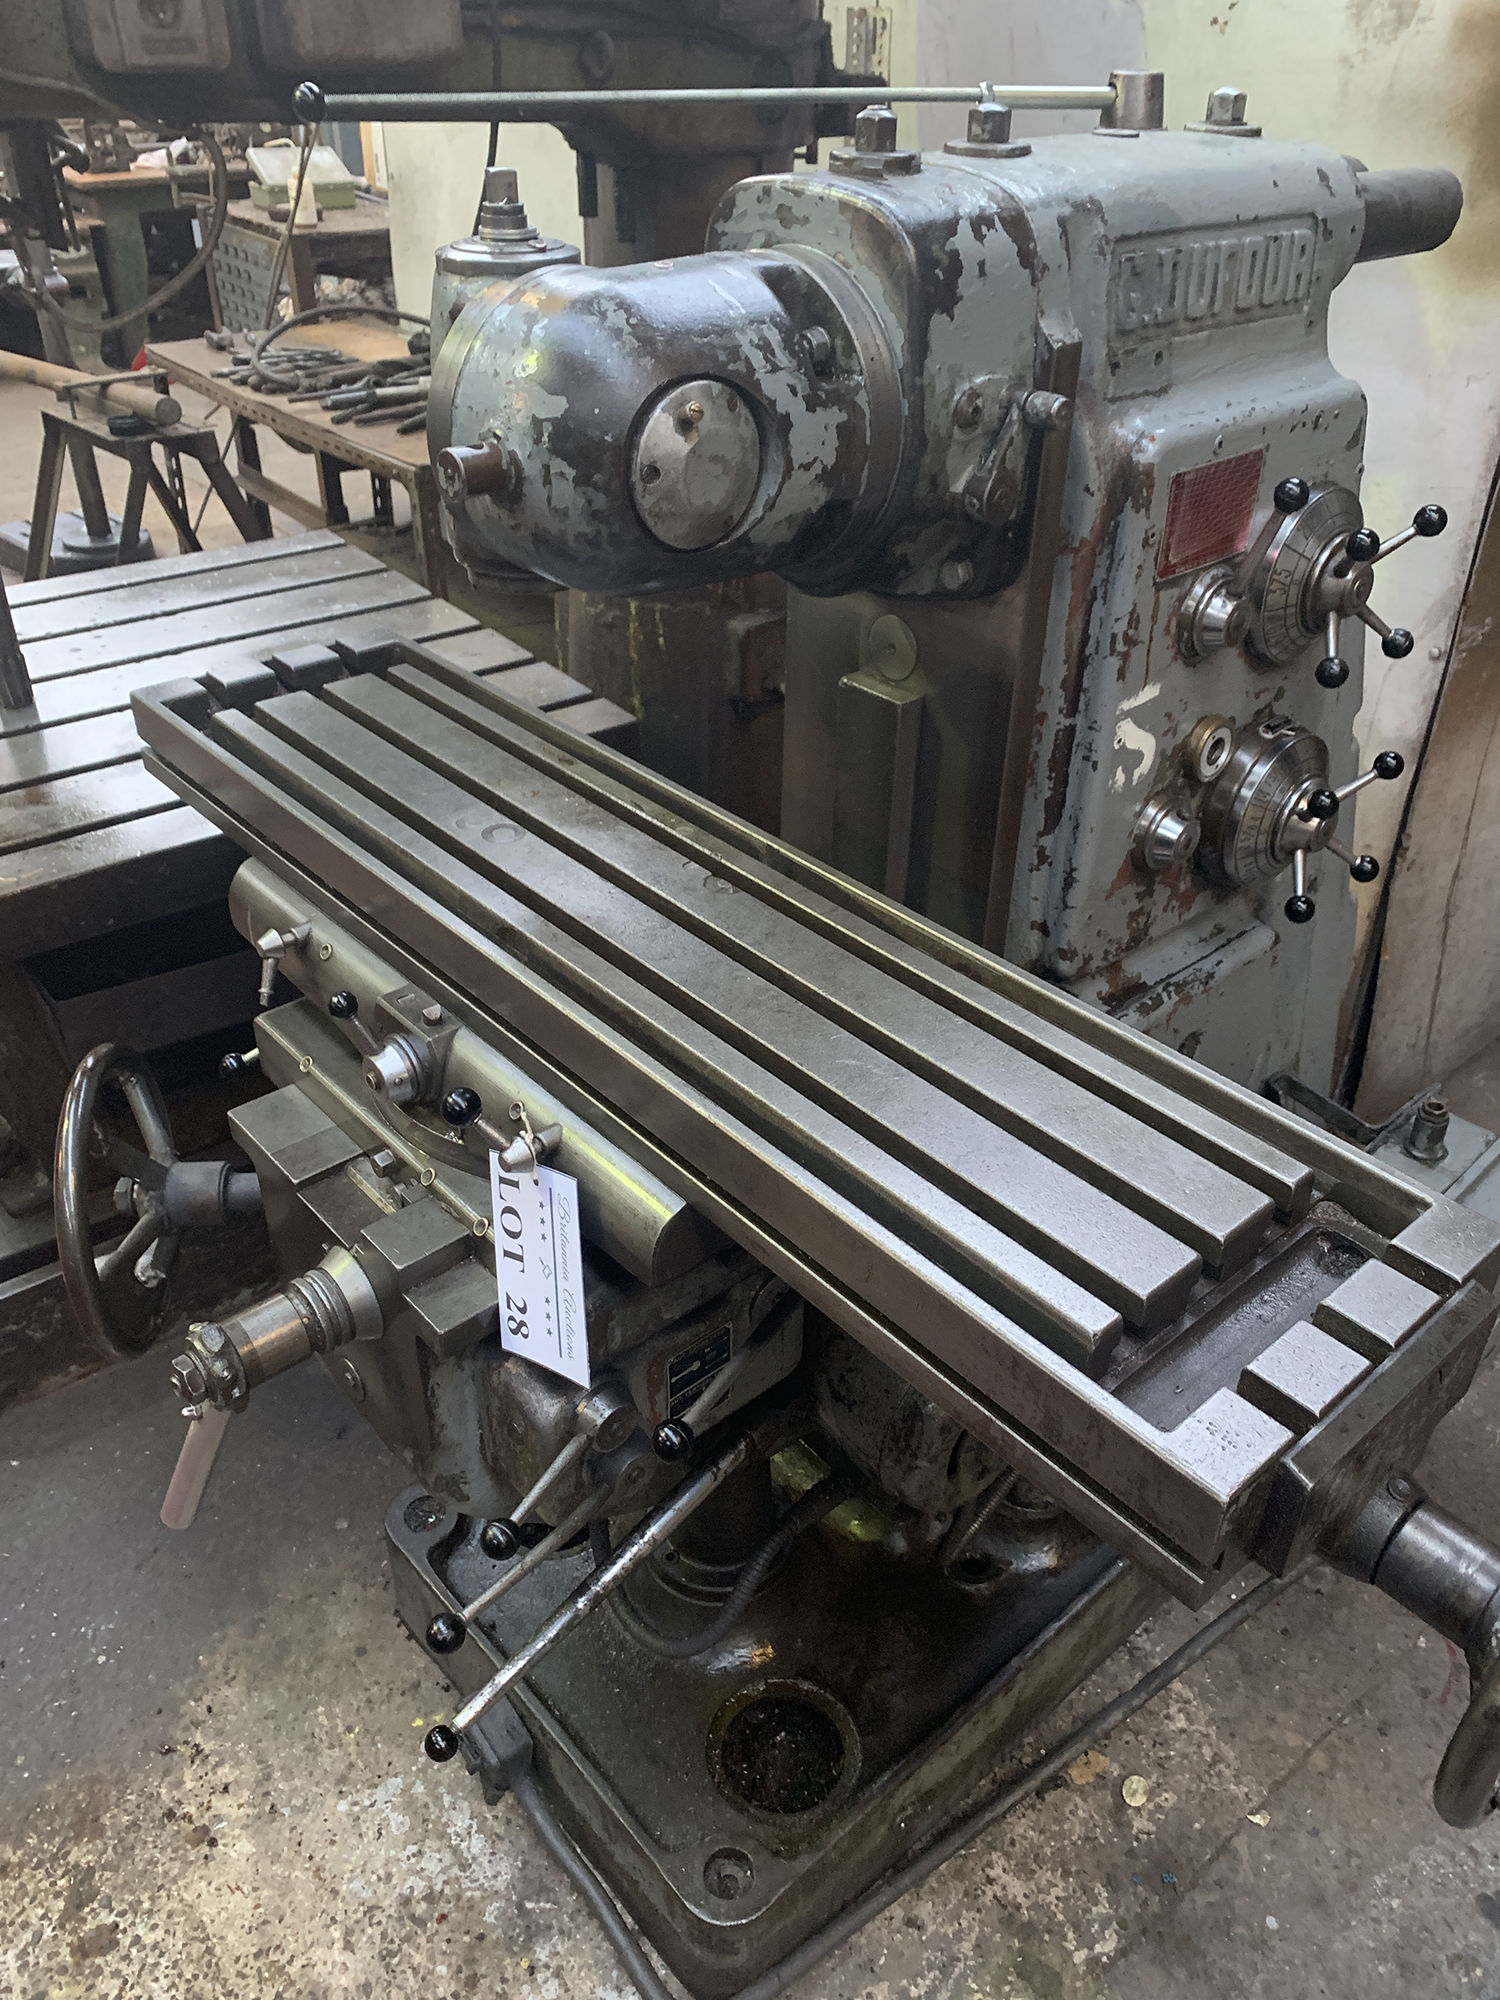 Dufour Universal Milling Machine with Double Swivel Head. Table Size 1100 x 250mm. - Image 4 of 4